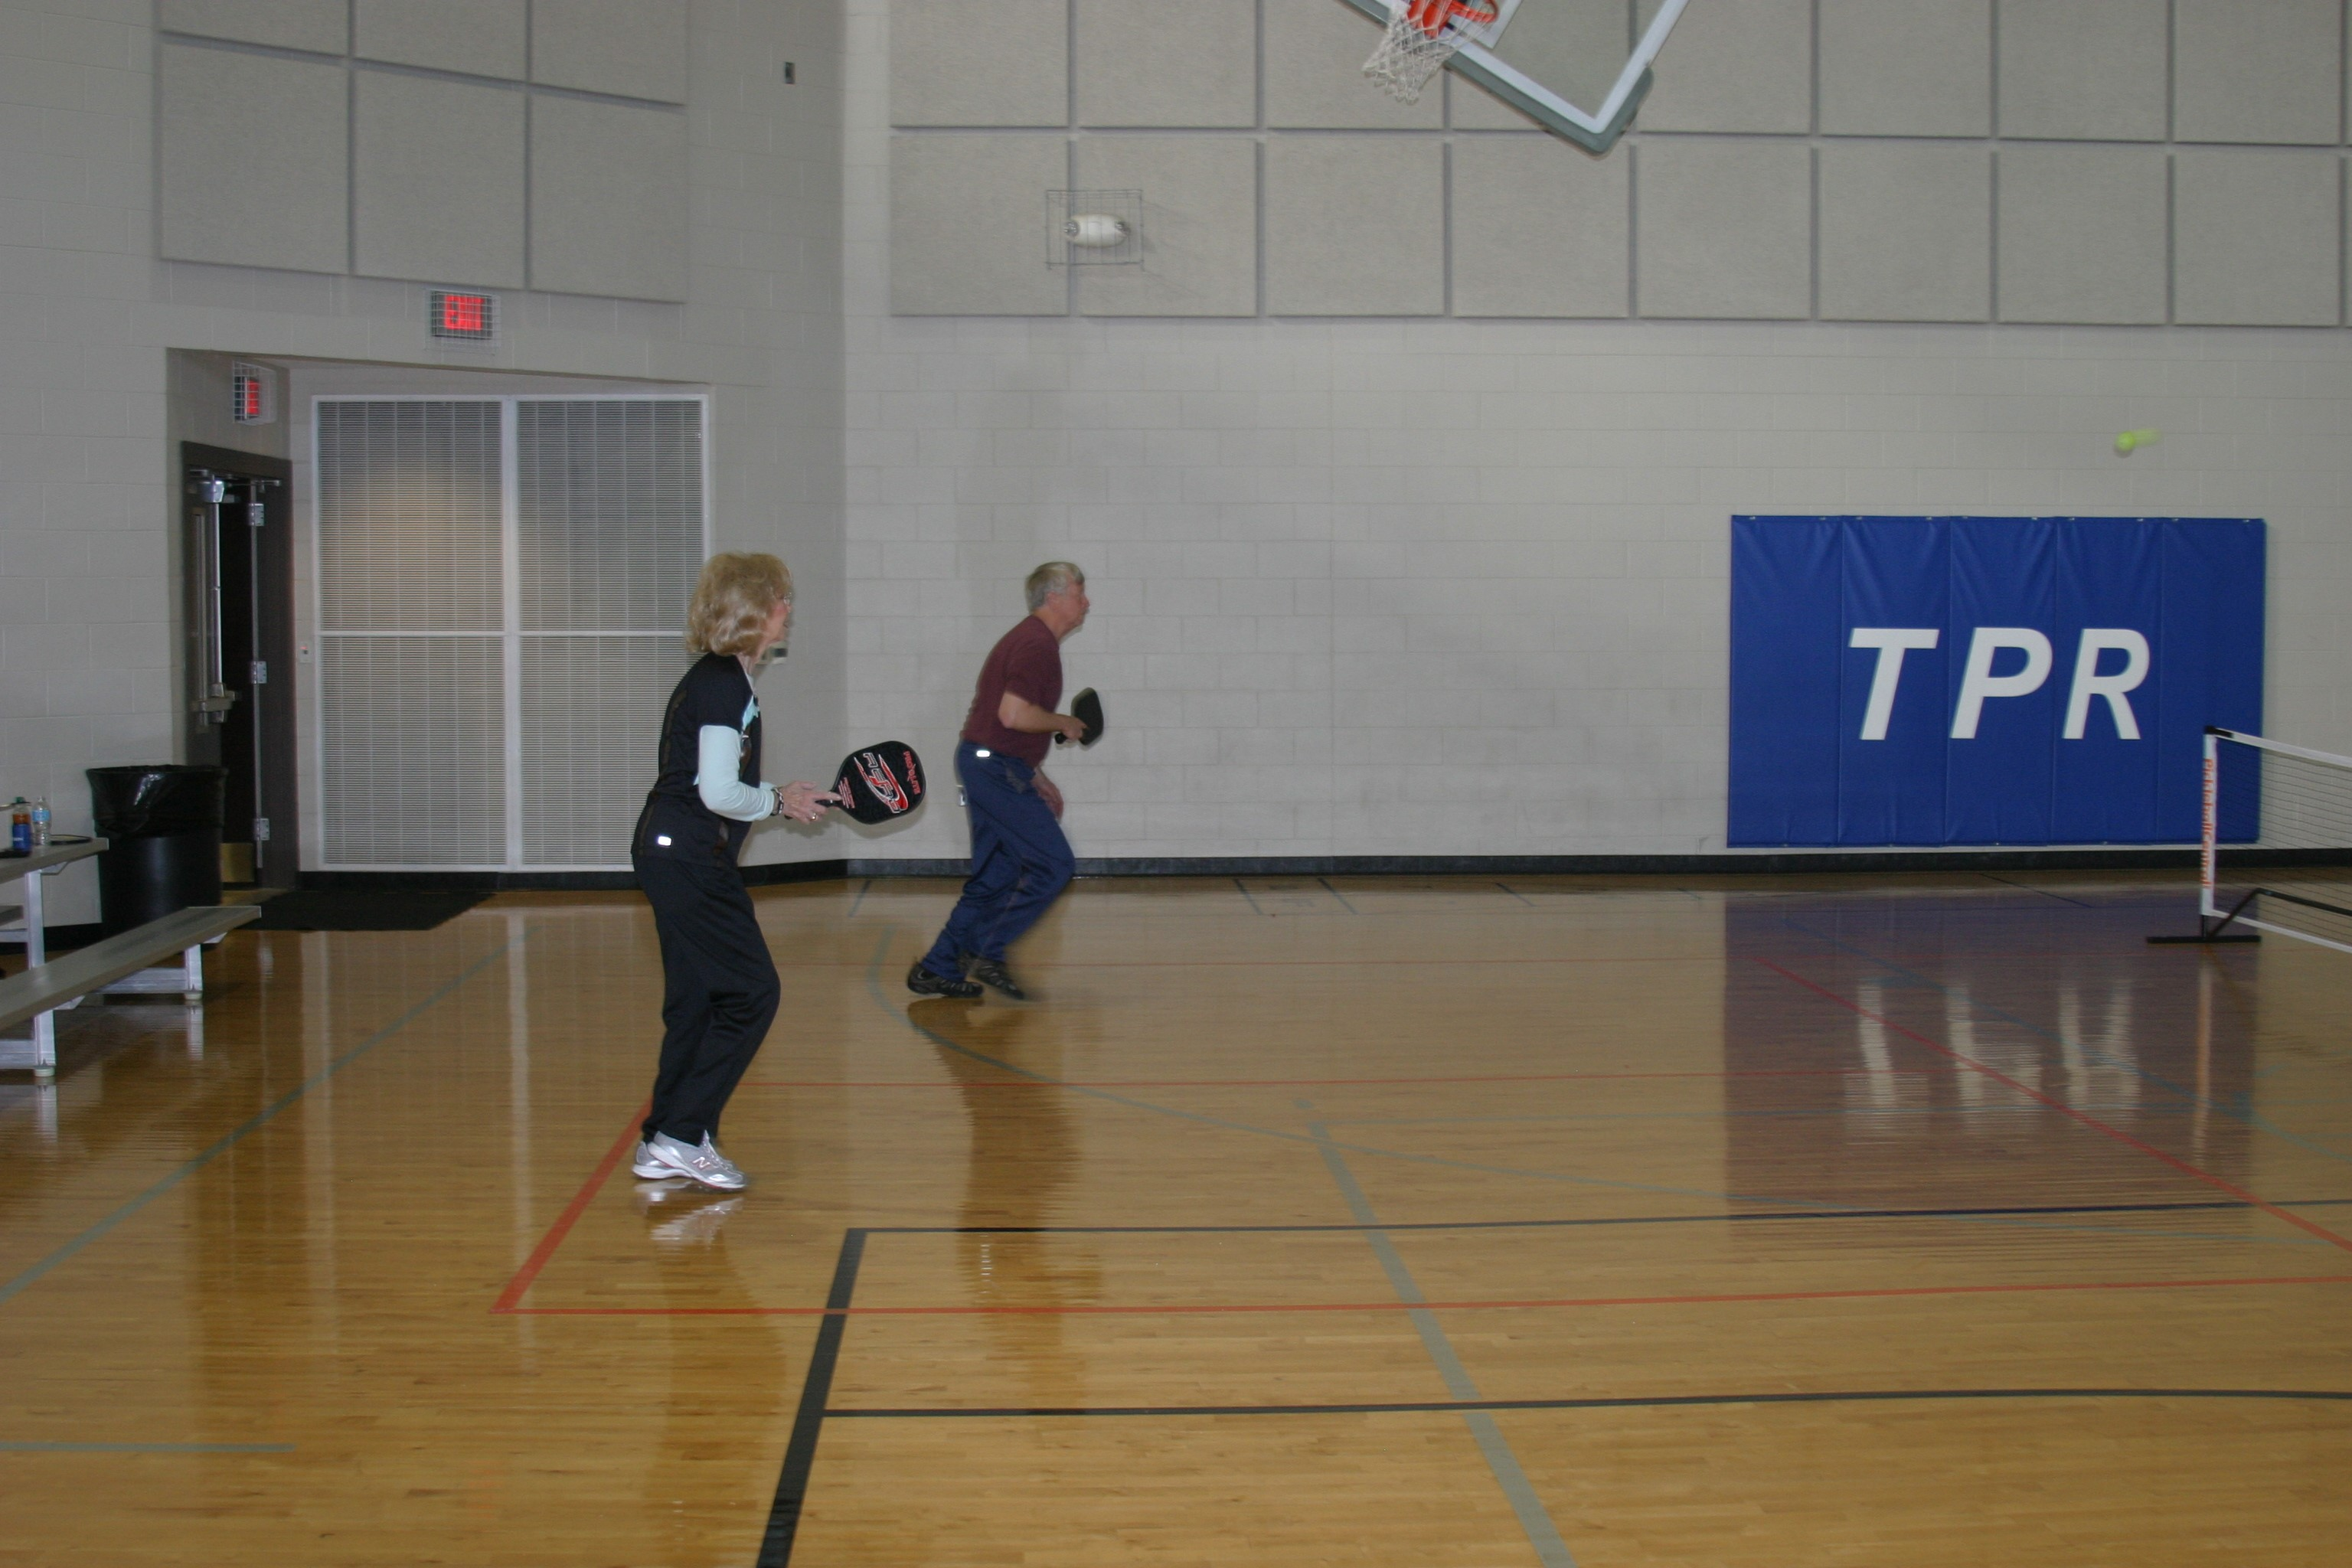 alabama pickleball, trussville pickleball, birmingham pickleball, pickleball, family pickleball, trussville civic center